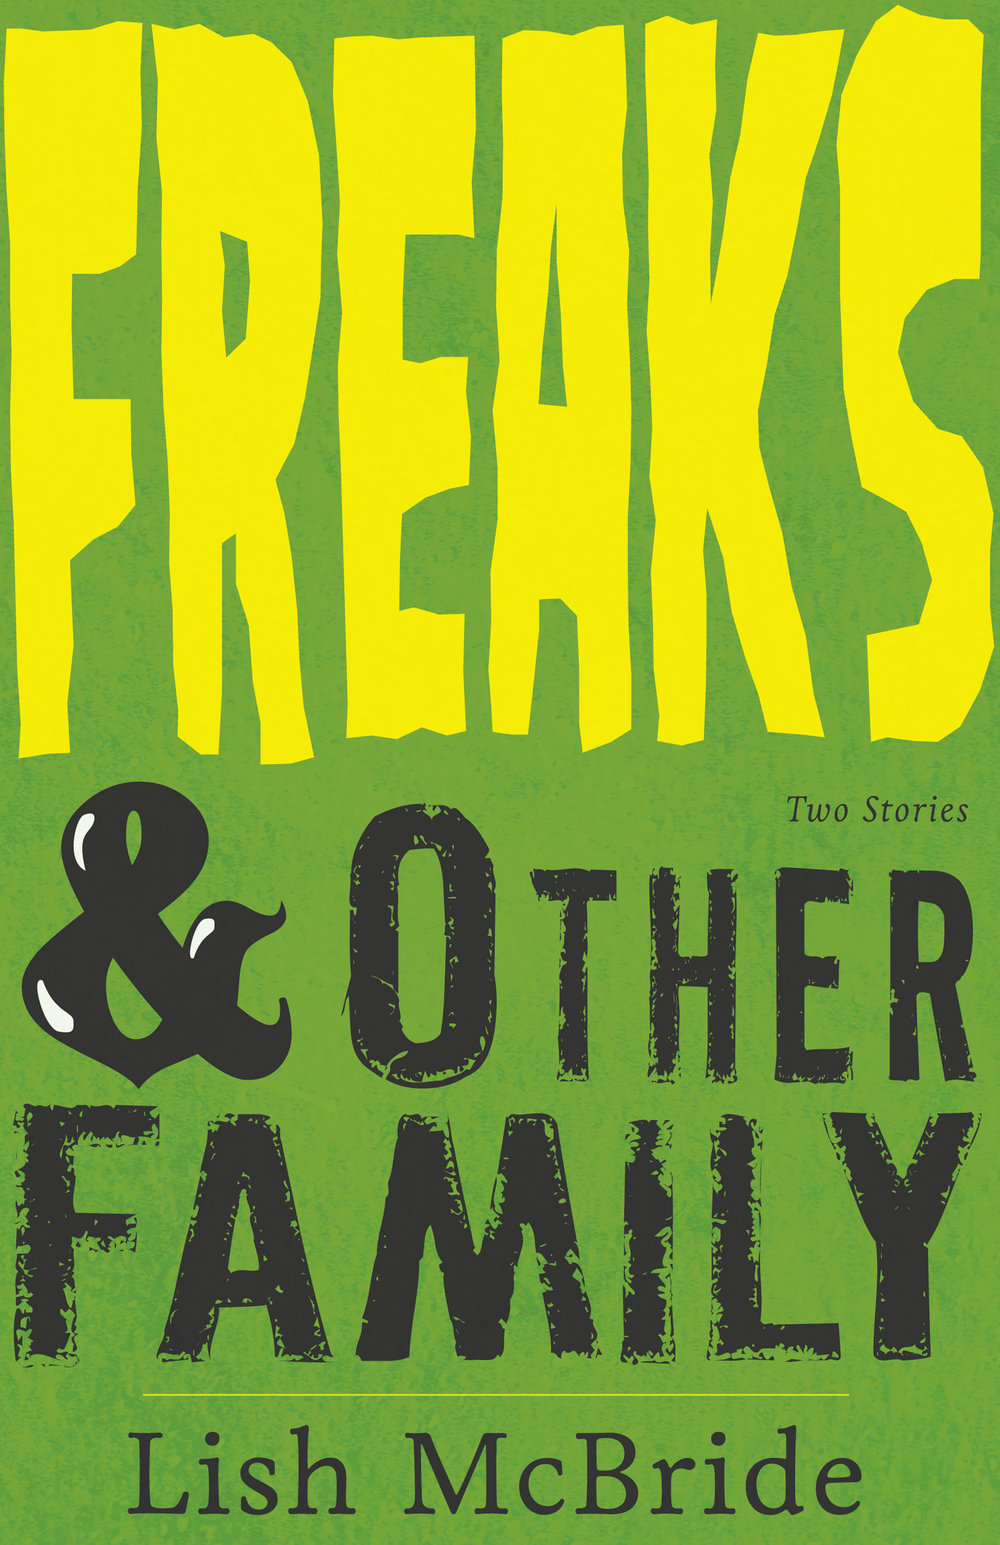 Freaks-and-Other-Family-iBooks.jpg